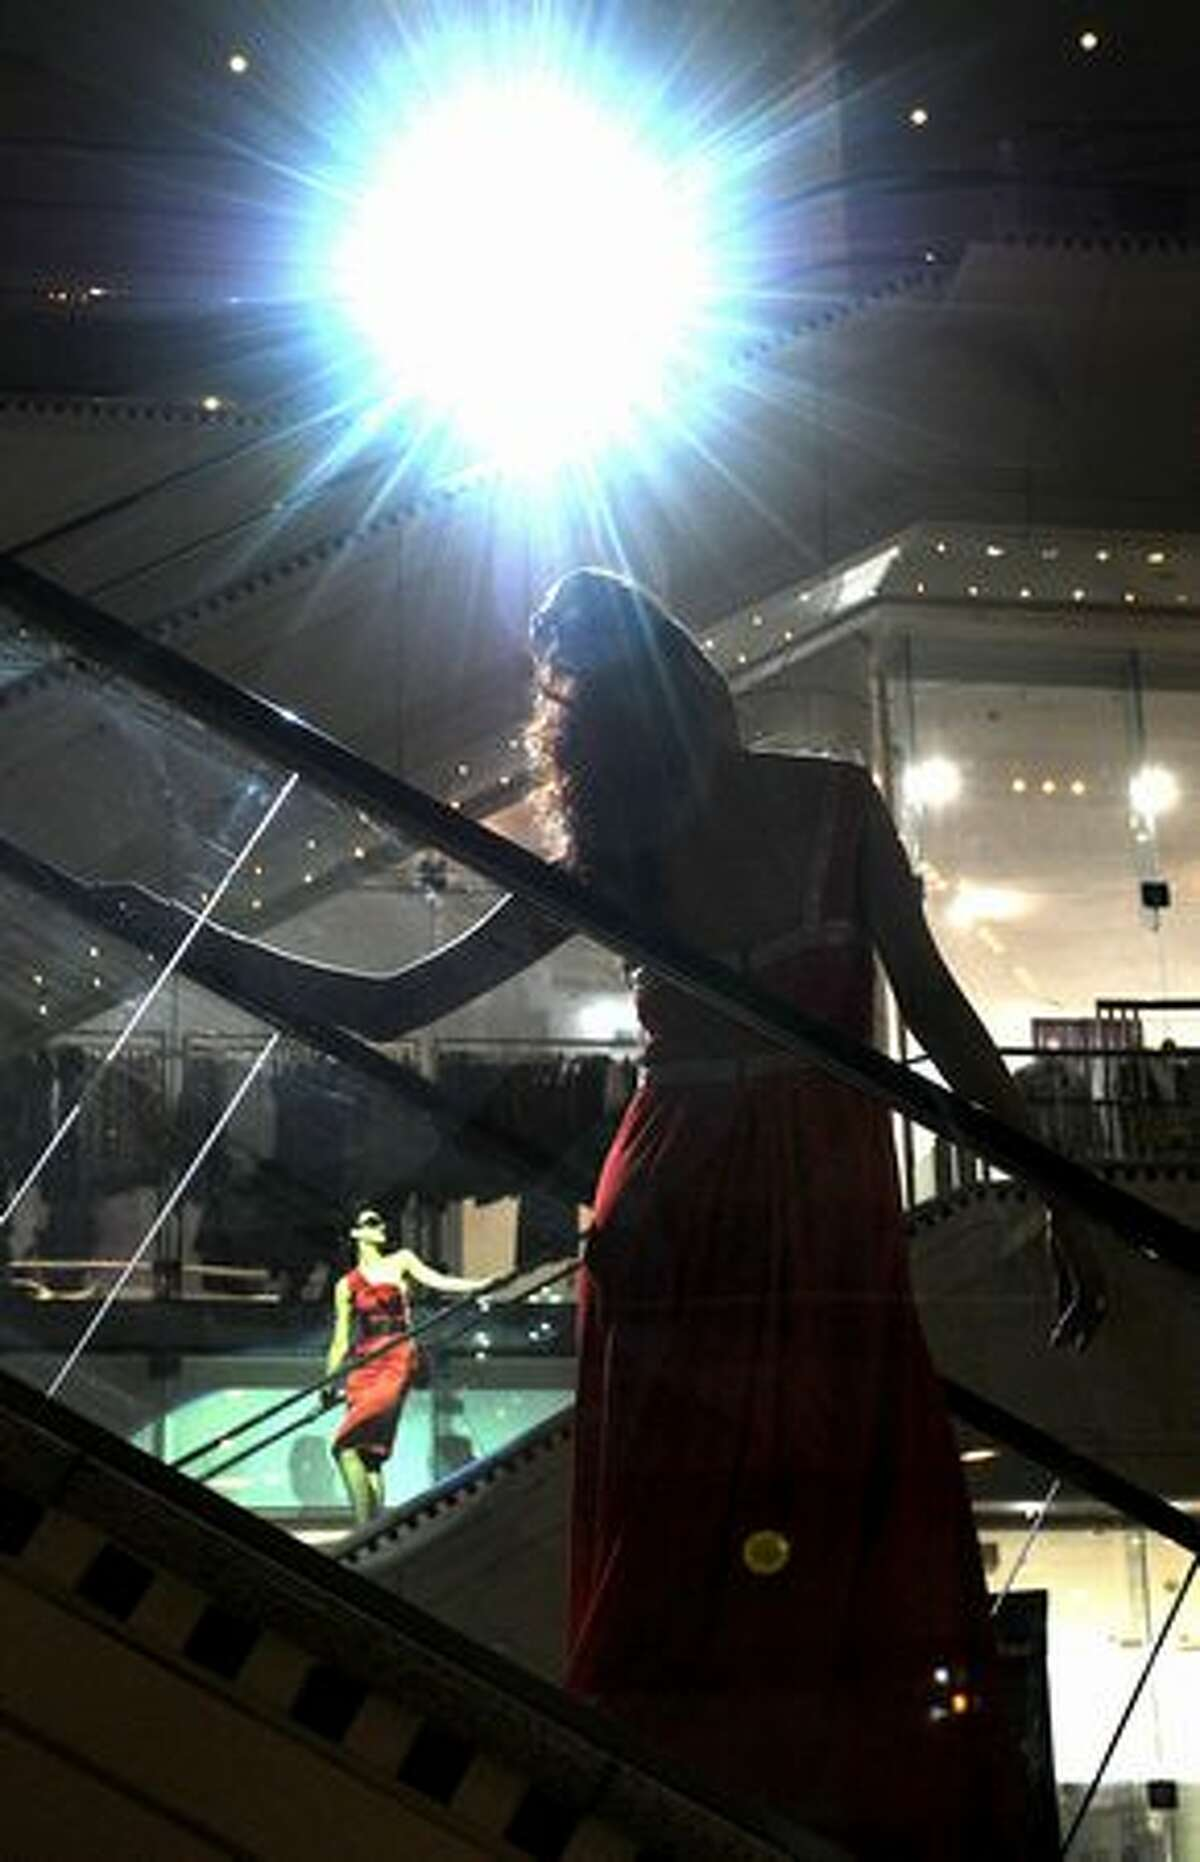 Models parade outfits on an escalator during a show of designers at the Collins234 shopping complex.